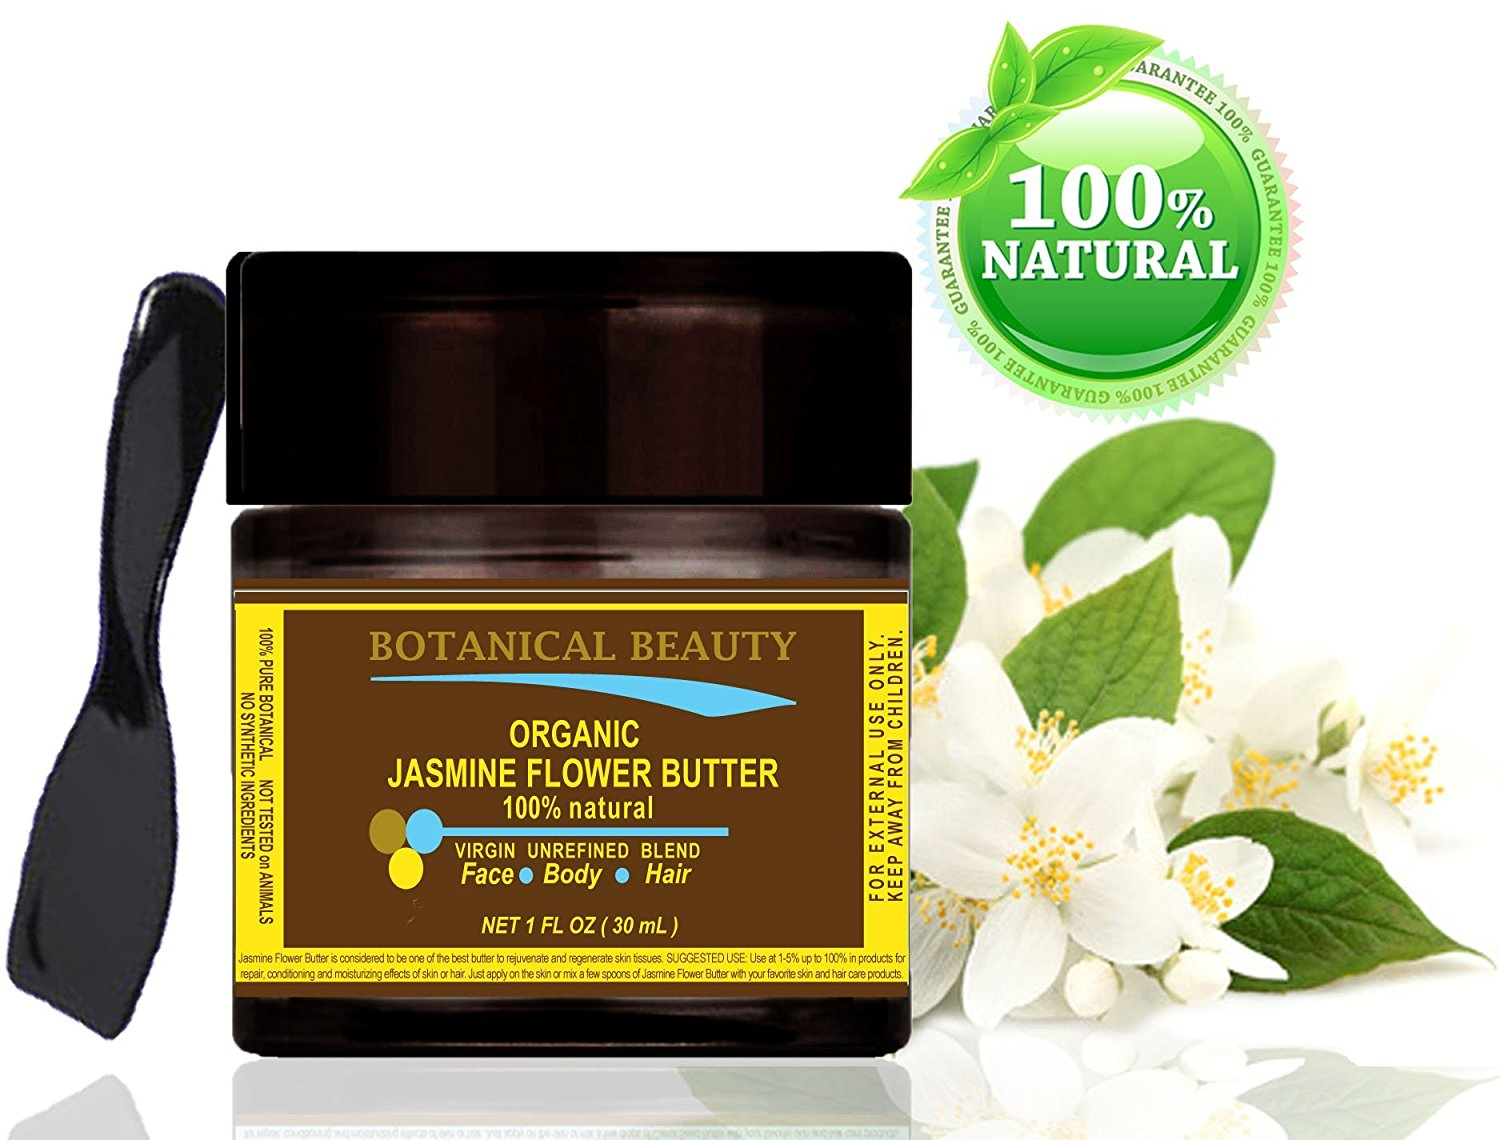 Cheap plant jasmine flower find plant jasmine flower deals on line get quotations jasmine flower butter organic 100 natural 100 pure botanicals virgin unrefined izmirmasajfo